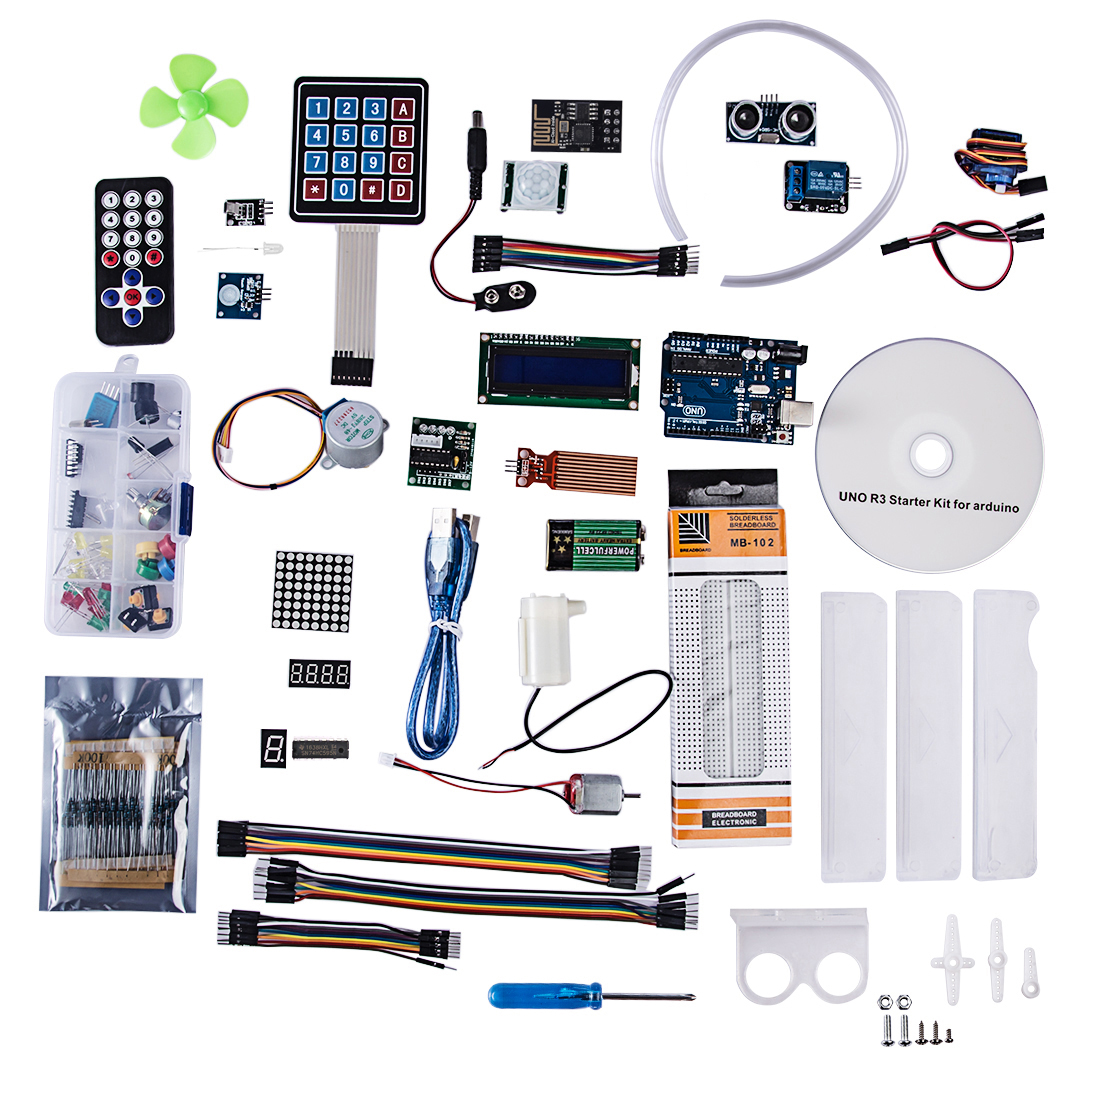 Modiker 28 Sensors For UNO R3 Deluxe Basic Starter Kit For Beginner With Wifi Module With CD Tutorial For Arduino Programmable